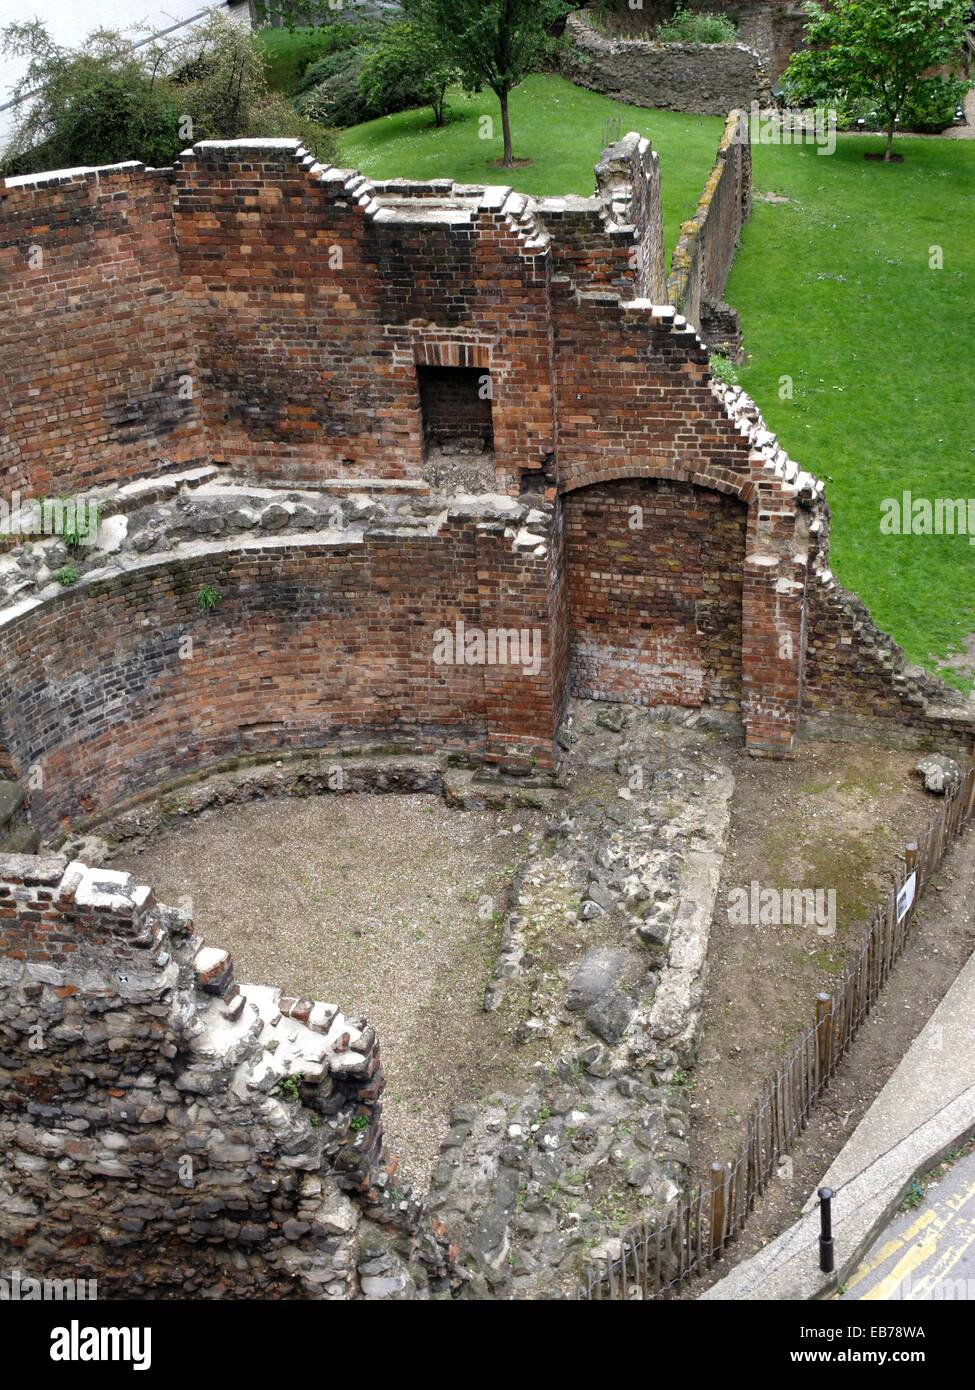 Ruins of rectangular fort built by Romans in AD 100-120  City of Wesminster  London city  England  Uited Kingdom. - Stock Image